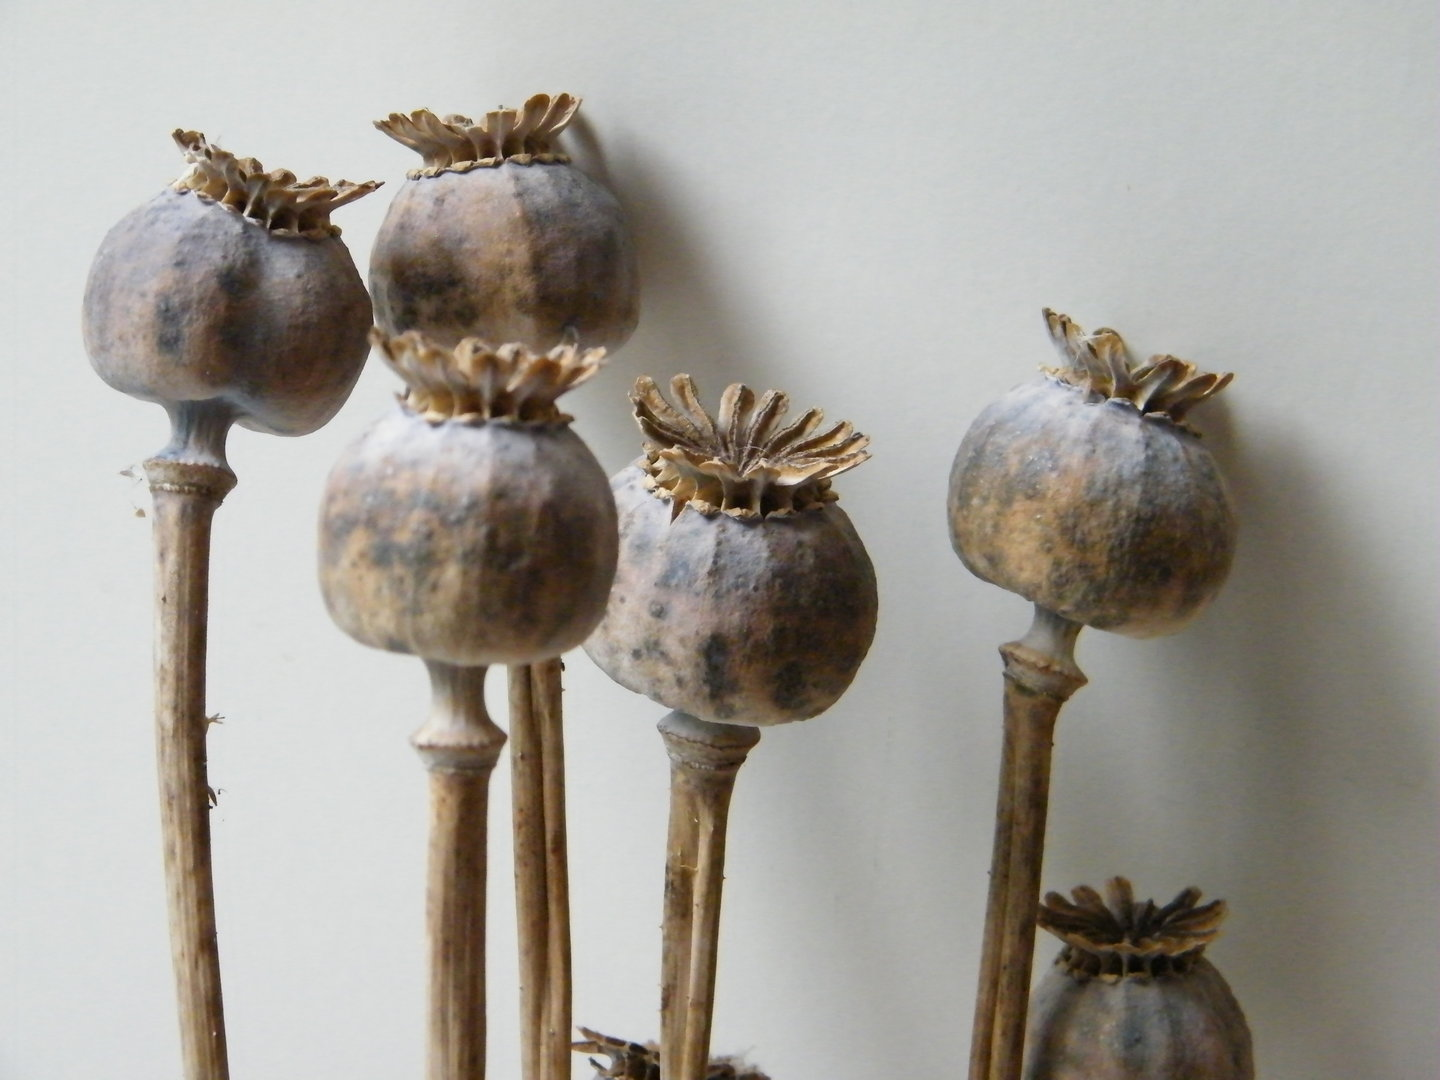 Poppy Seed Heads Bunch Large Dried Flowers Daisyshop